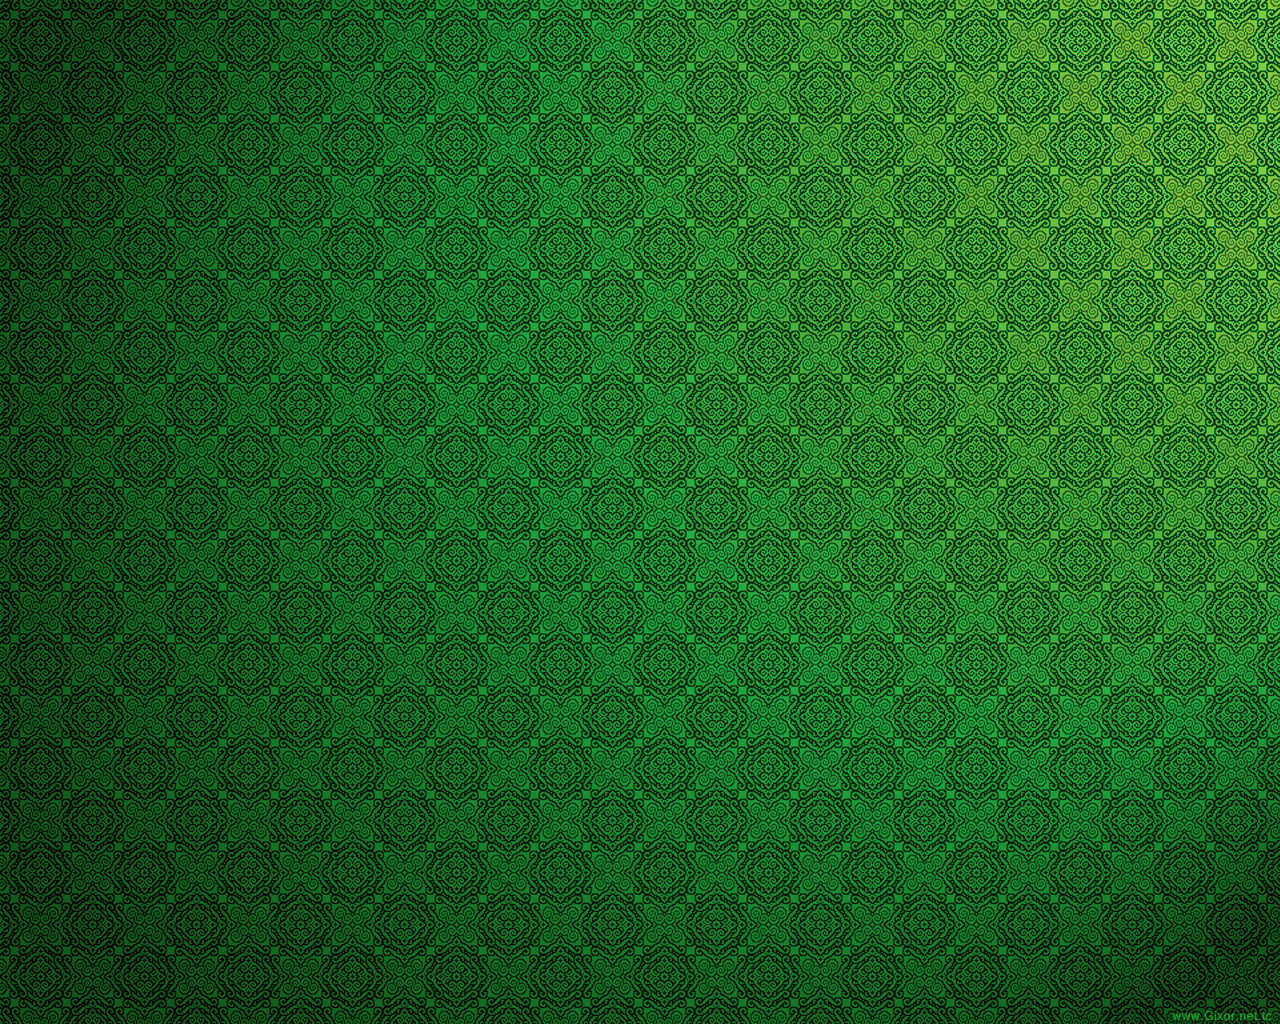 green nature wallpaper green wallpaper design green grass wallpaper 1280x1024